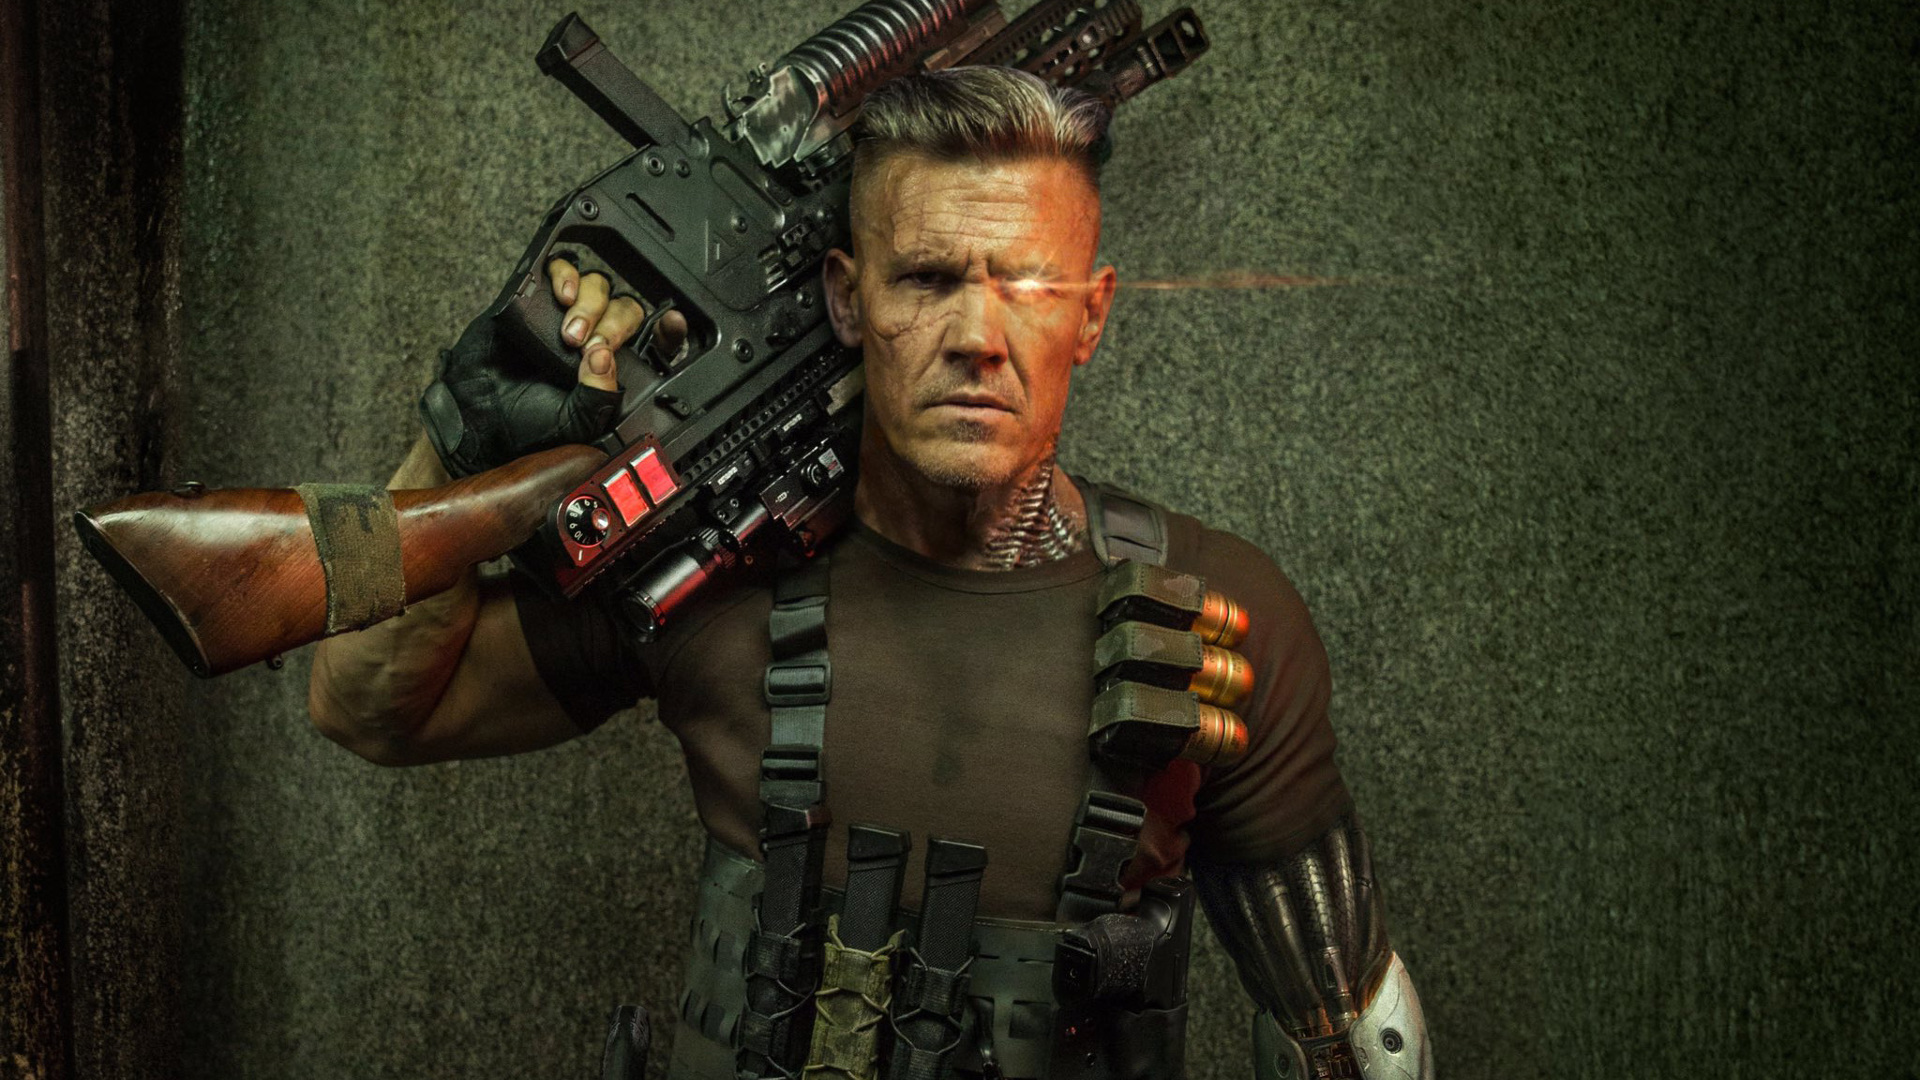 1920x1080 Cable Deadpool 2 1080p Laptop Full Hd Wallpaper